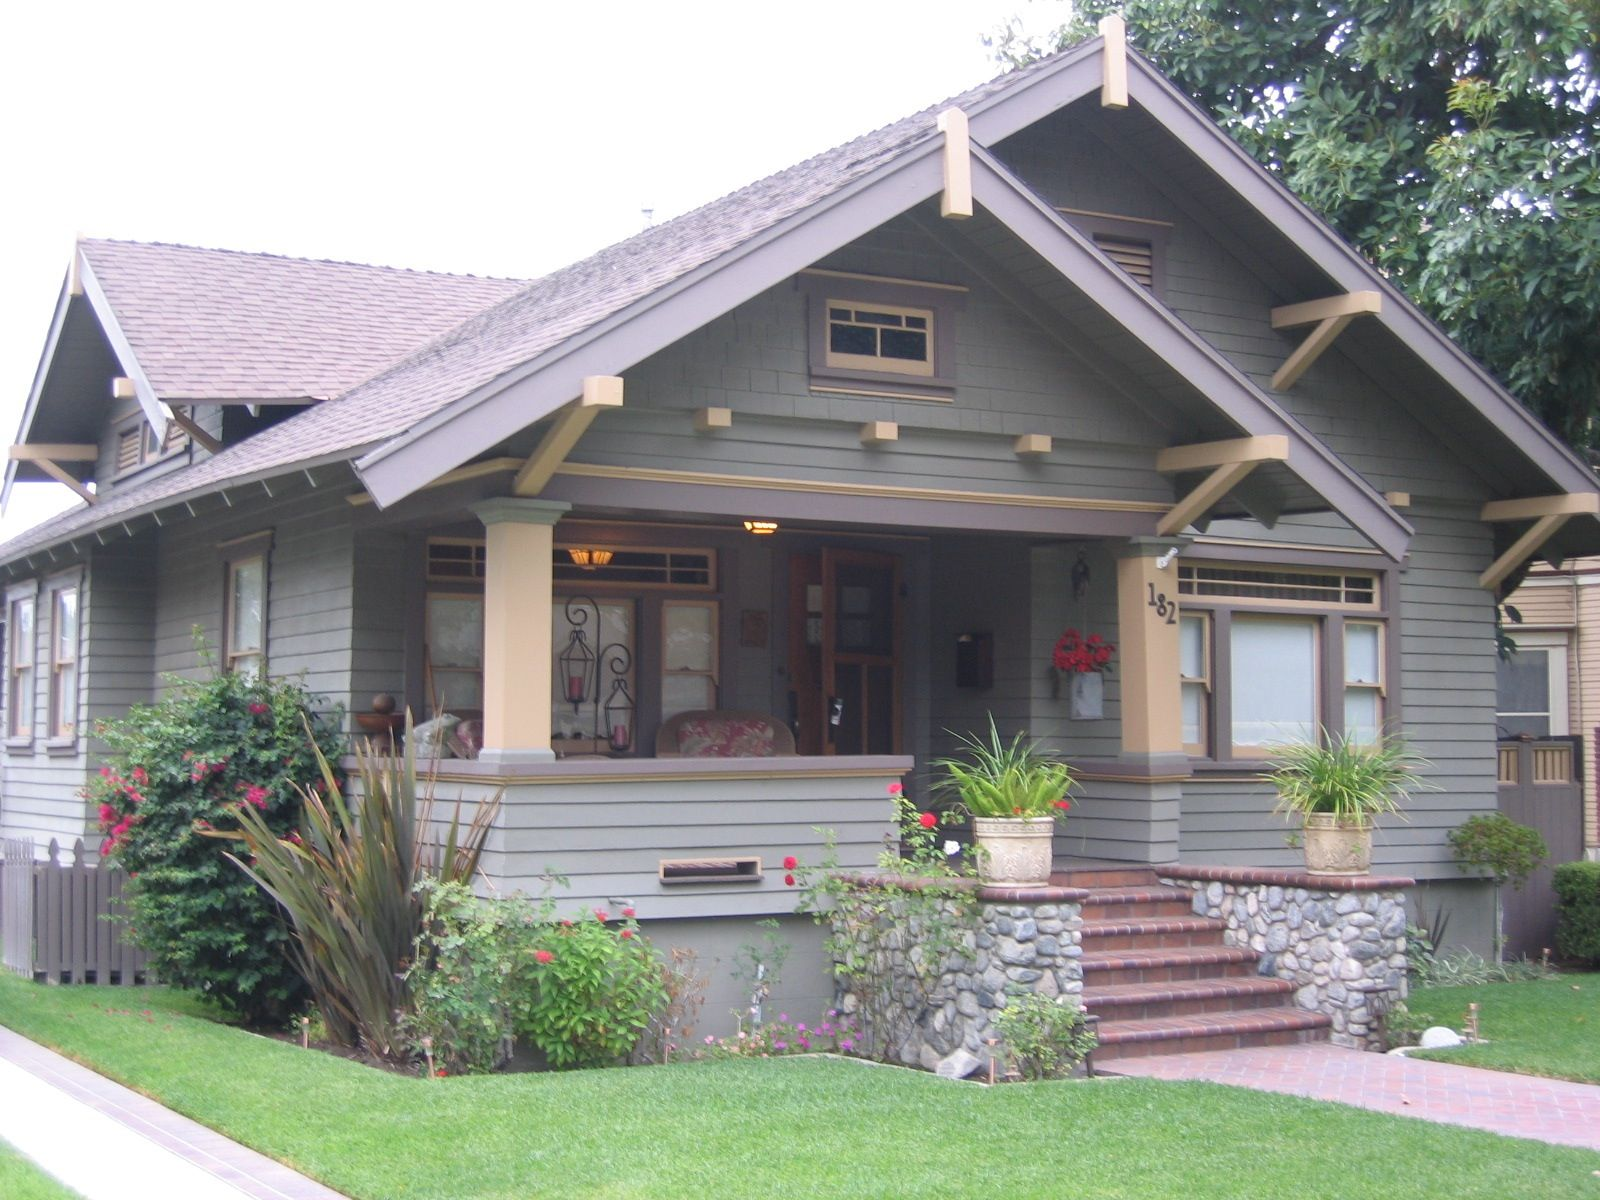 Craftsman Style Homes Are Some Of My Favorites The Rooms